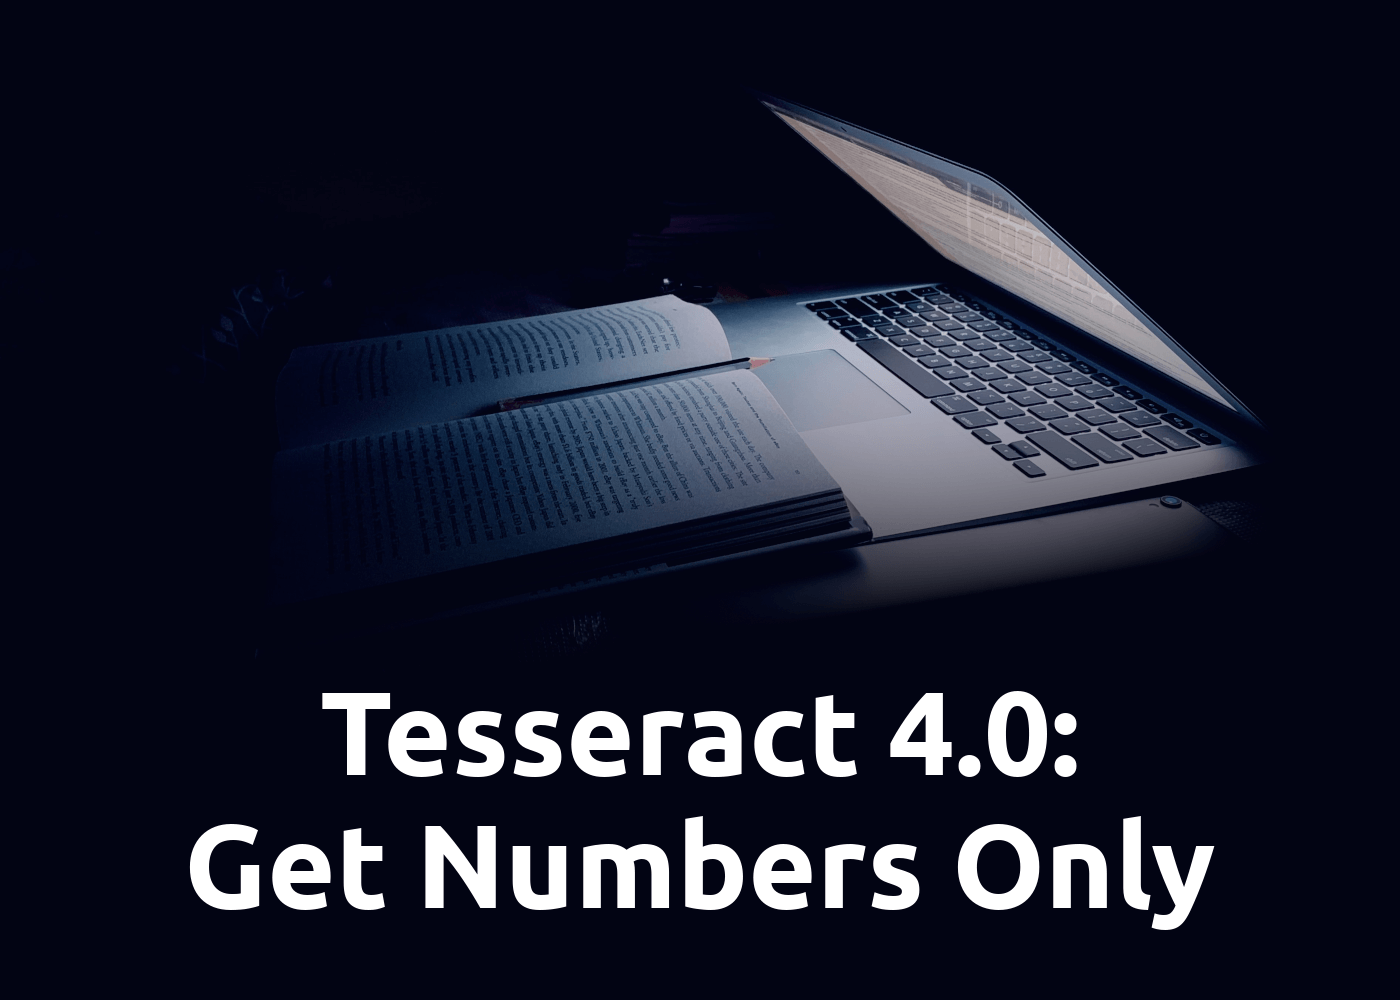 Python Tesseract 4.0 OCR: Recognize only Numbers / Digits and exclude all other Characters